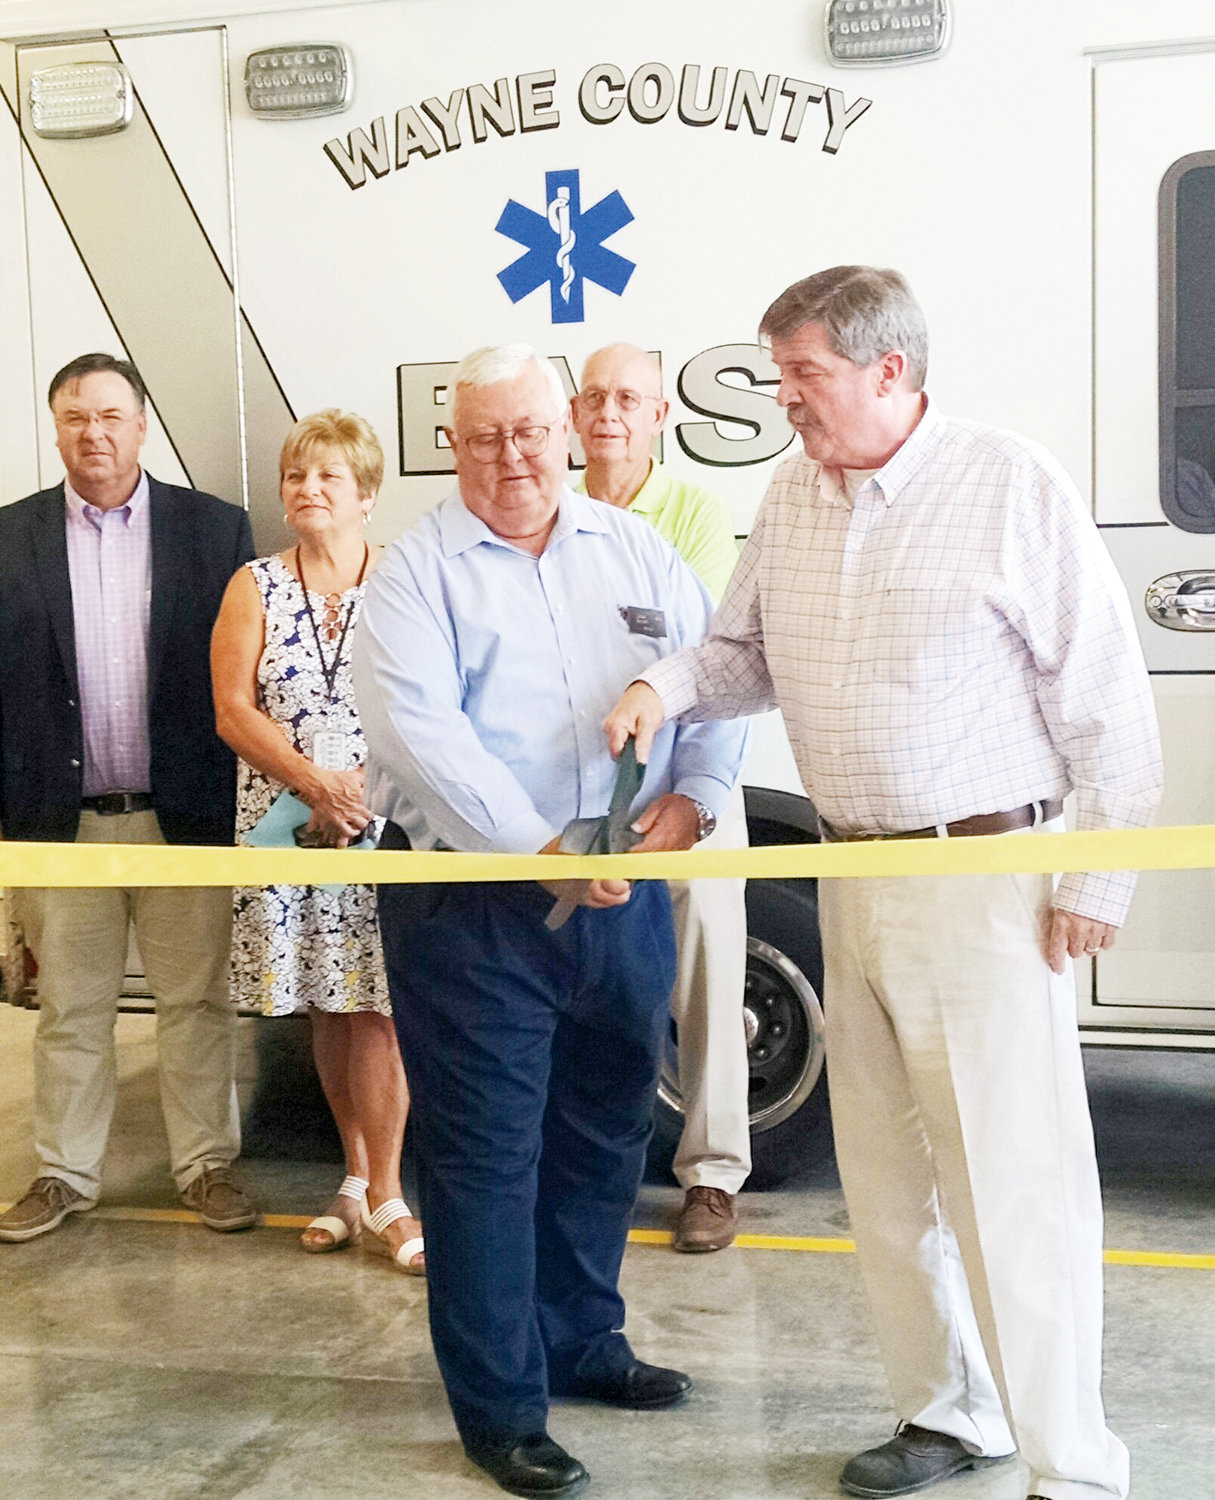 Mount Olive Mayor Joe Scott, left and Joe Gurley, chairman of the Wayne County Board of Commissioners, cut the ribbon to open the new $500,000 EMS No. 9 rescue station in Mount Olive. In the background, from left is County Manager Craig Honeycutt, EMS Director of Administration Nannette Sutton, and Wayne County Commissioner Wayne Aycock. This station is the third of four new EMS facilities in the county aimed at reducing rescue response time to 8 minutes.